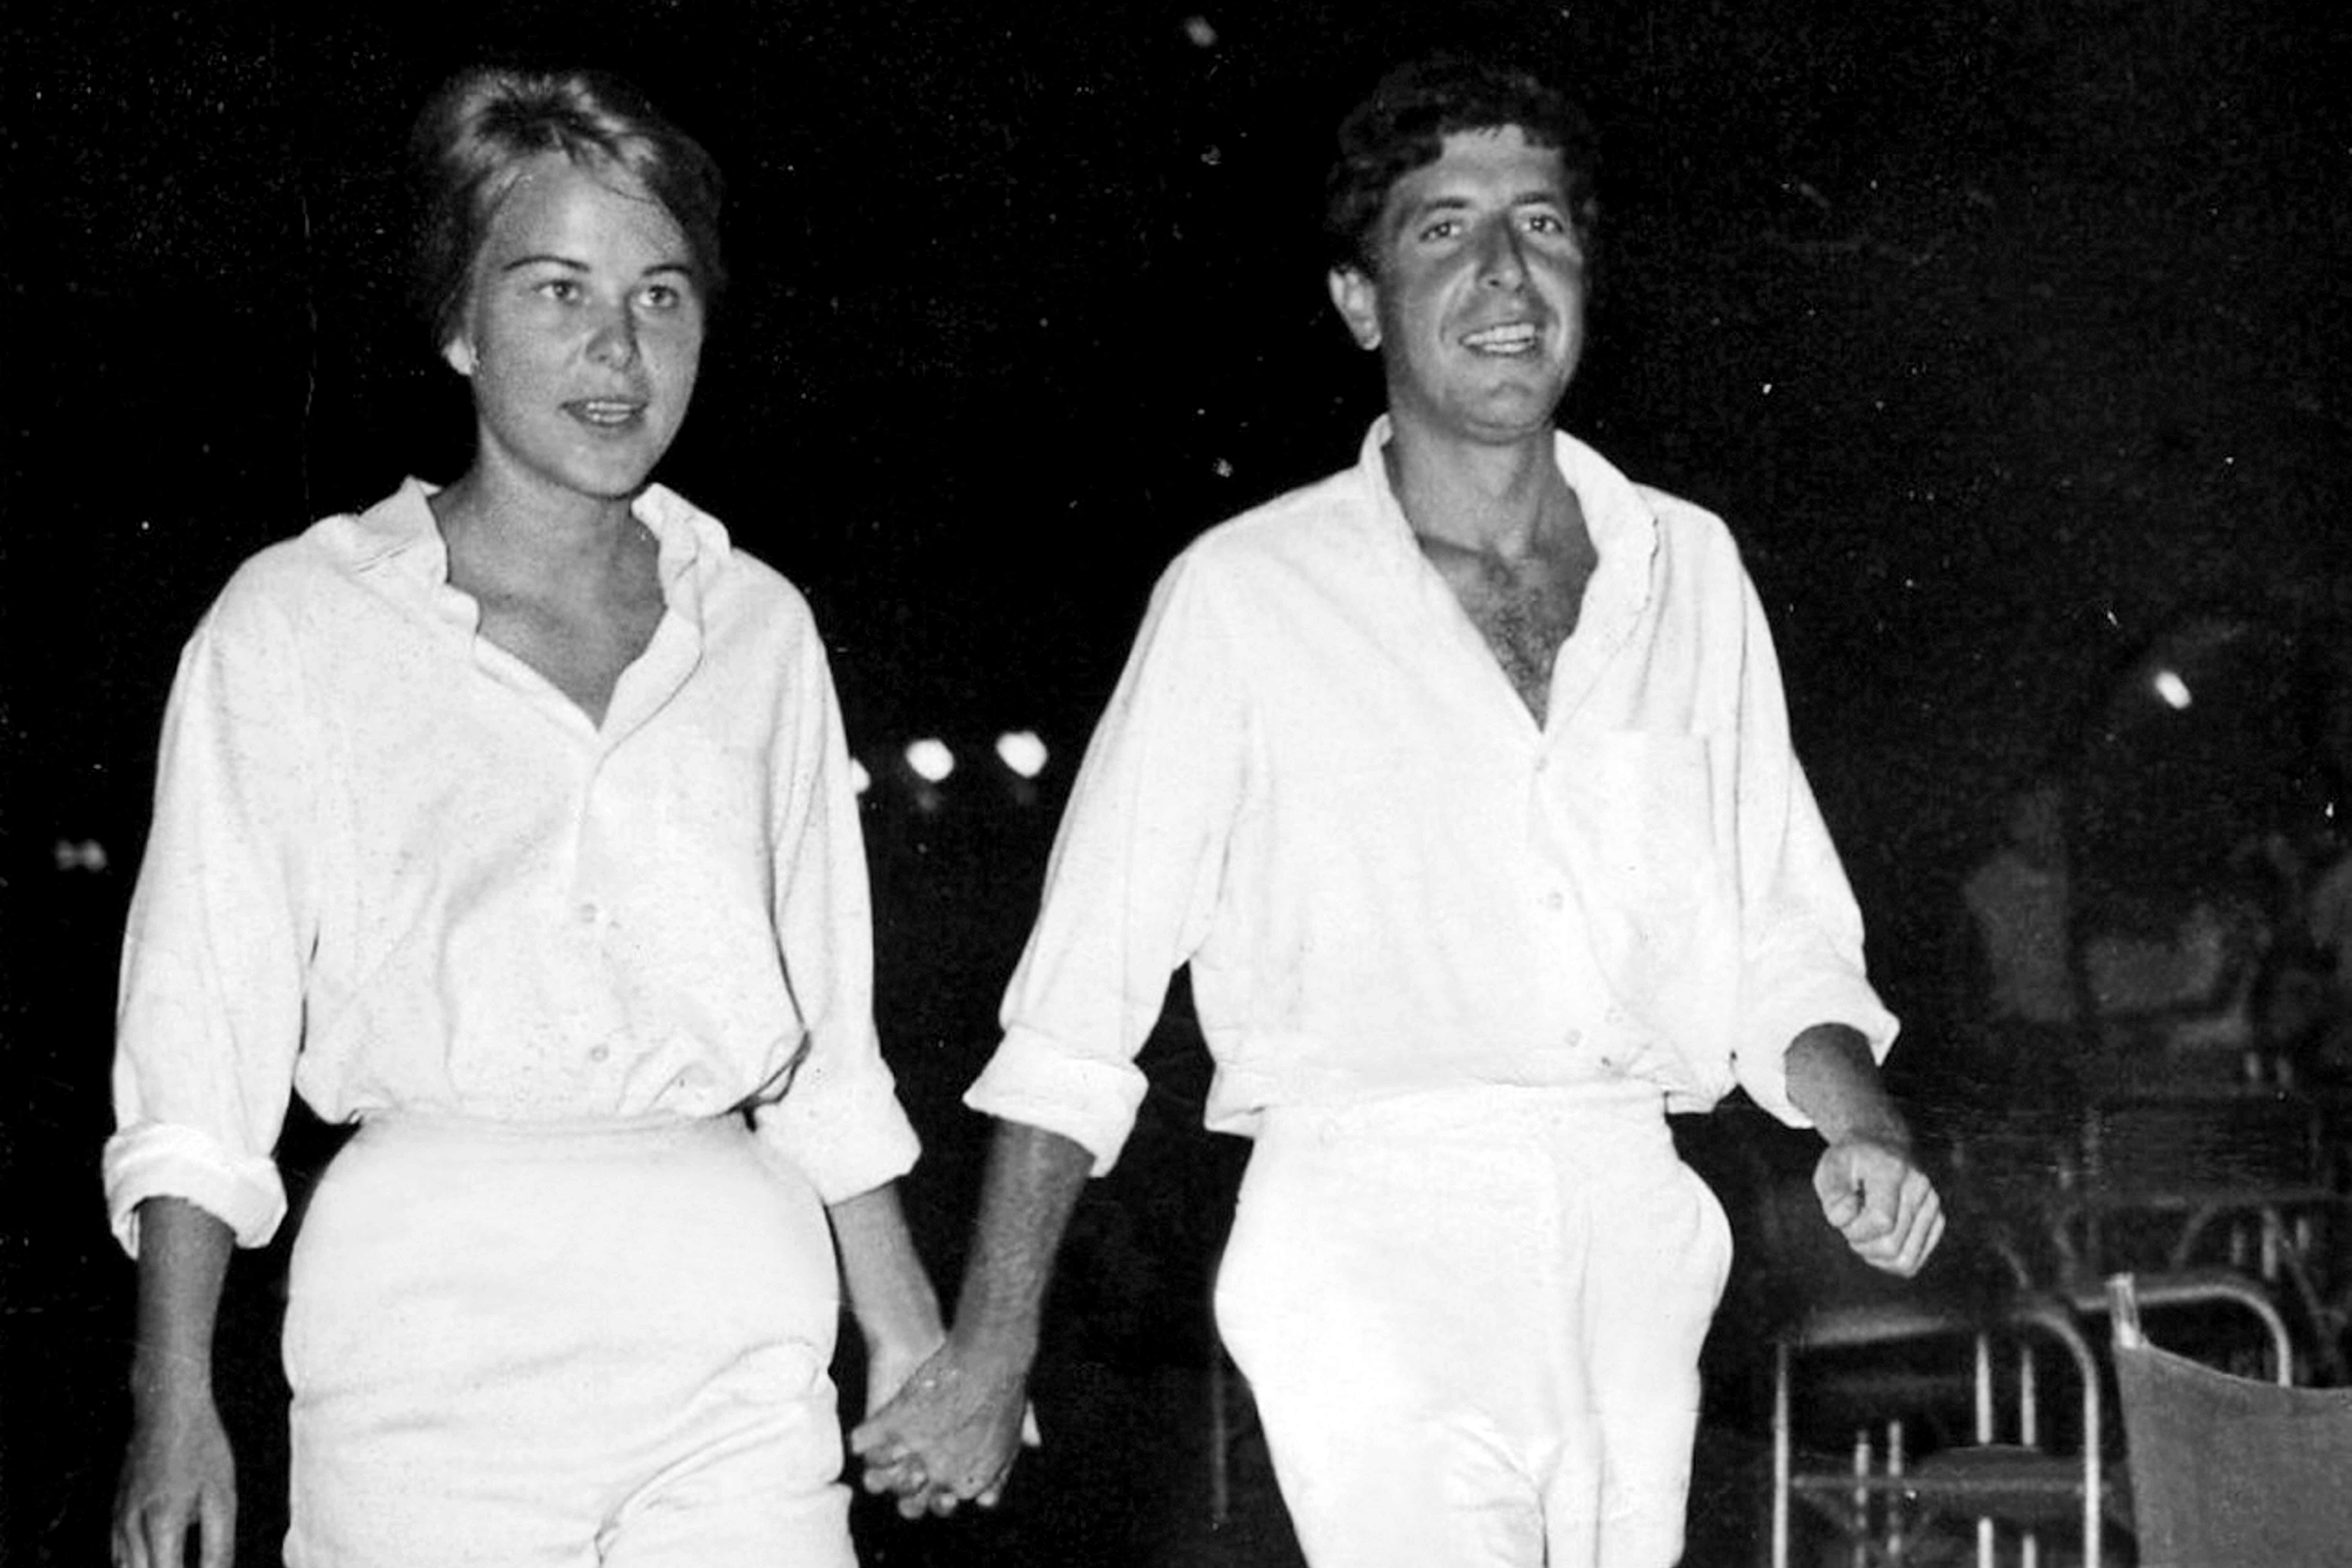 A-Photo-of-Marianne-Ihlen-and-Leonard-Cohen-from-the-film-MARIANNE-LEONARD-WORDS-OF-LOVE-Courtesy-of-Roadside-Attractions_